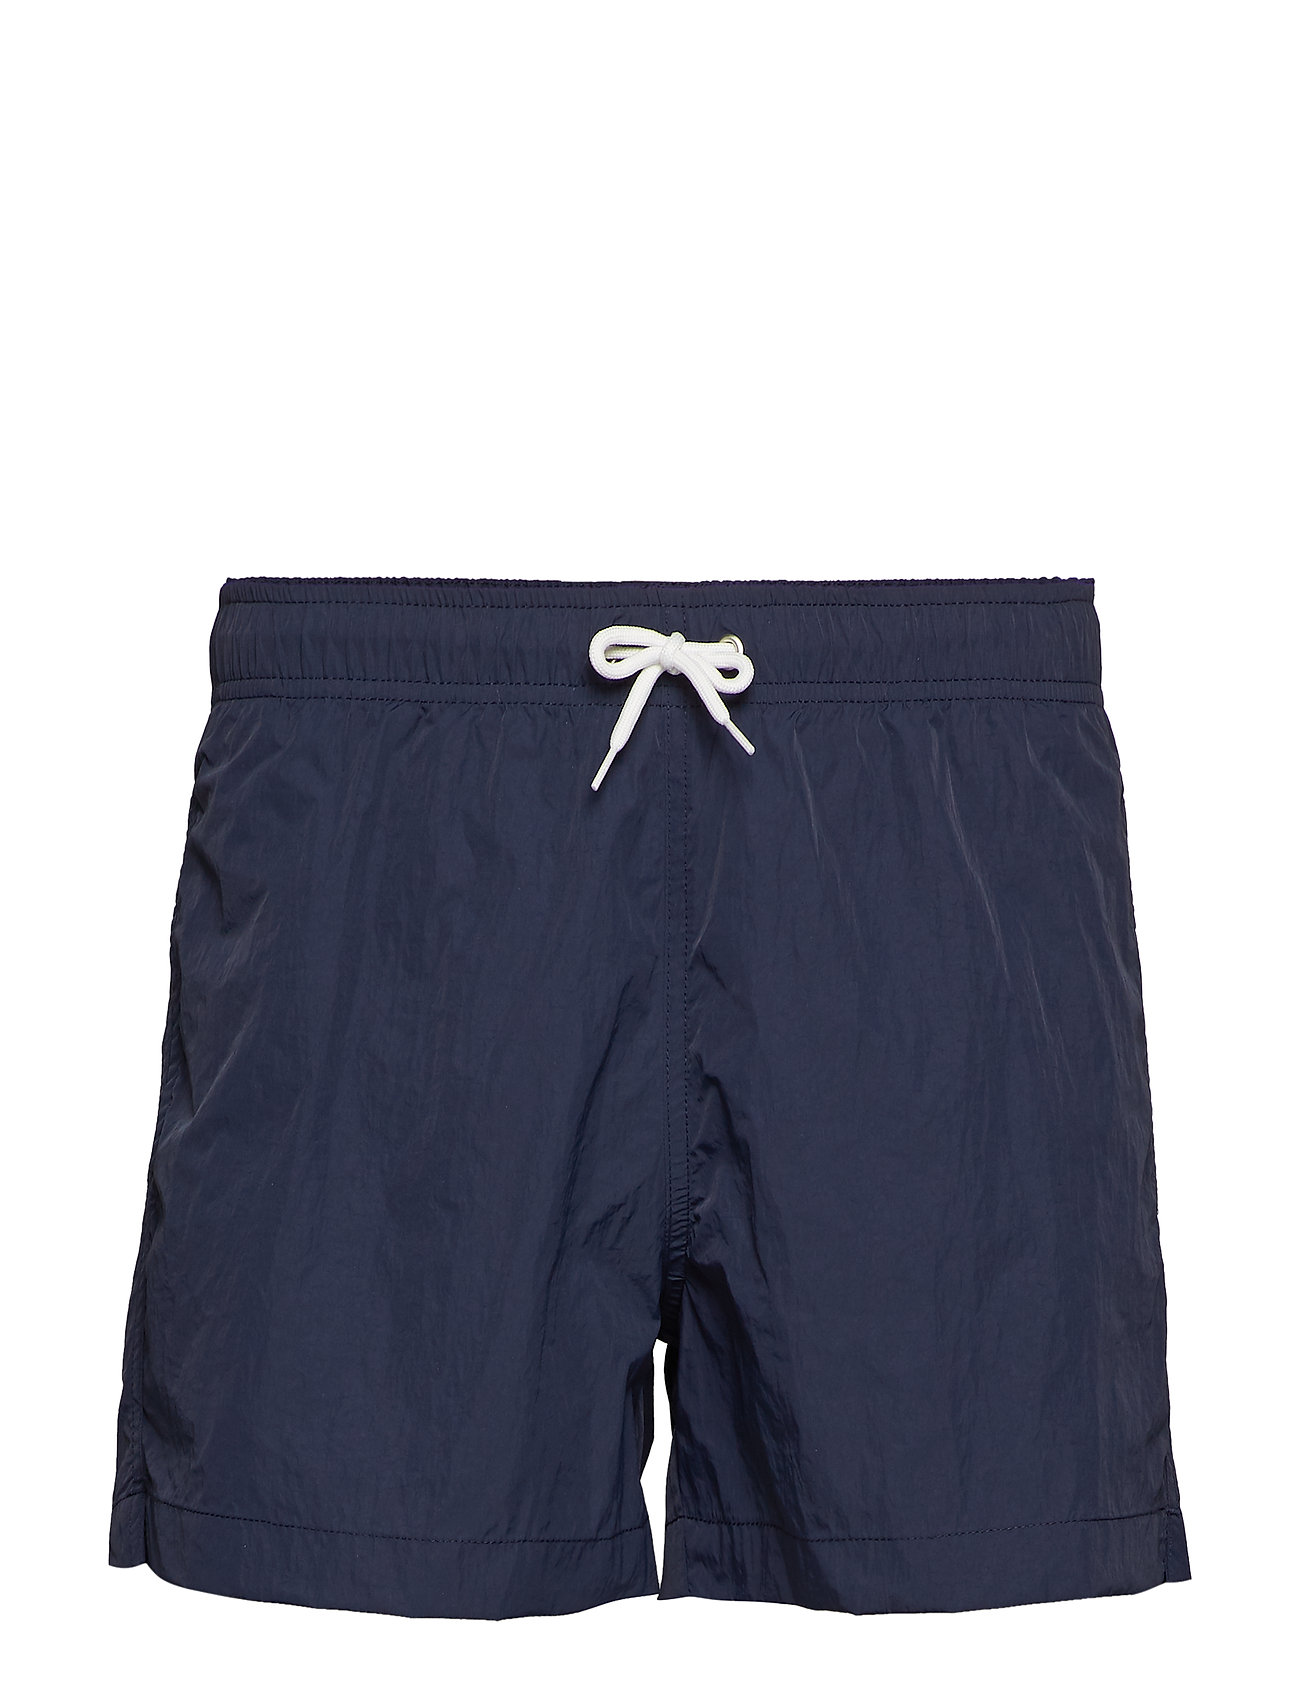 Knowledge Cotton Apparel Nylon swimshorts - GRS - TOTAL ECLIPSE